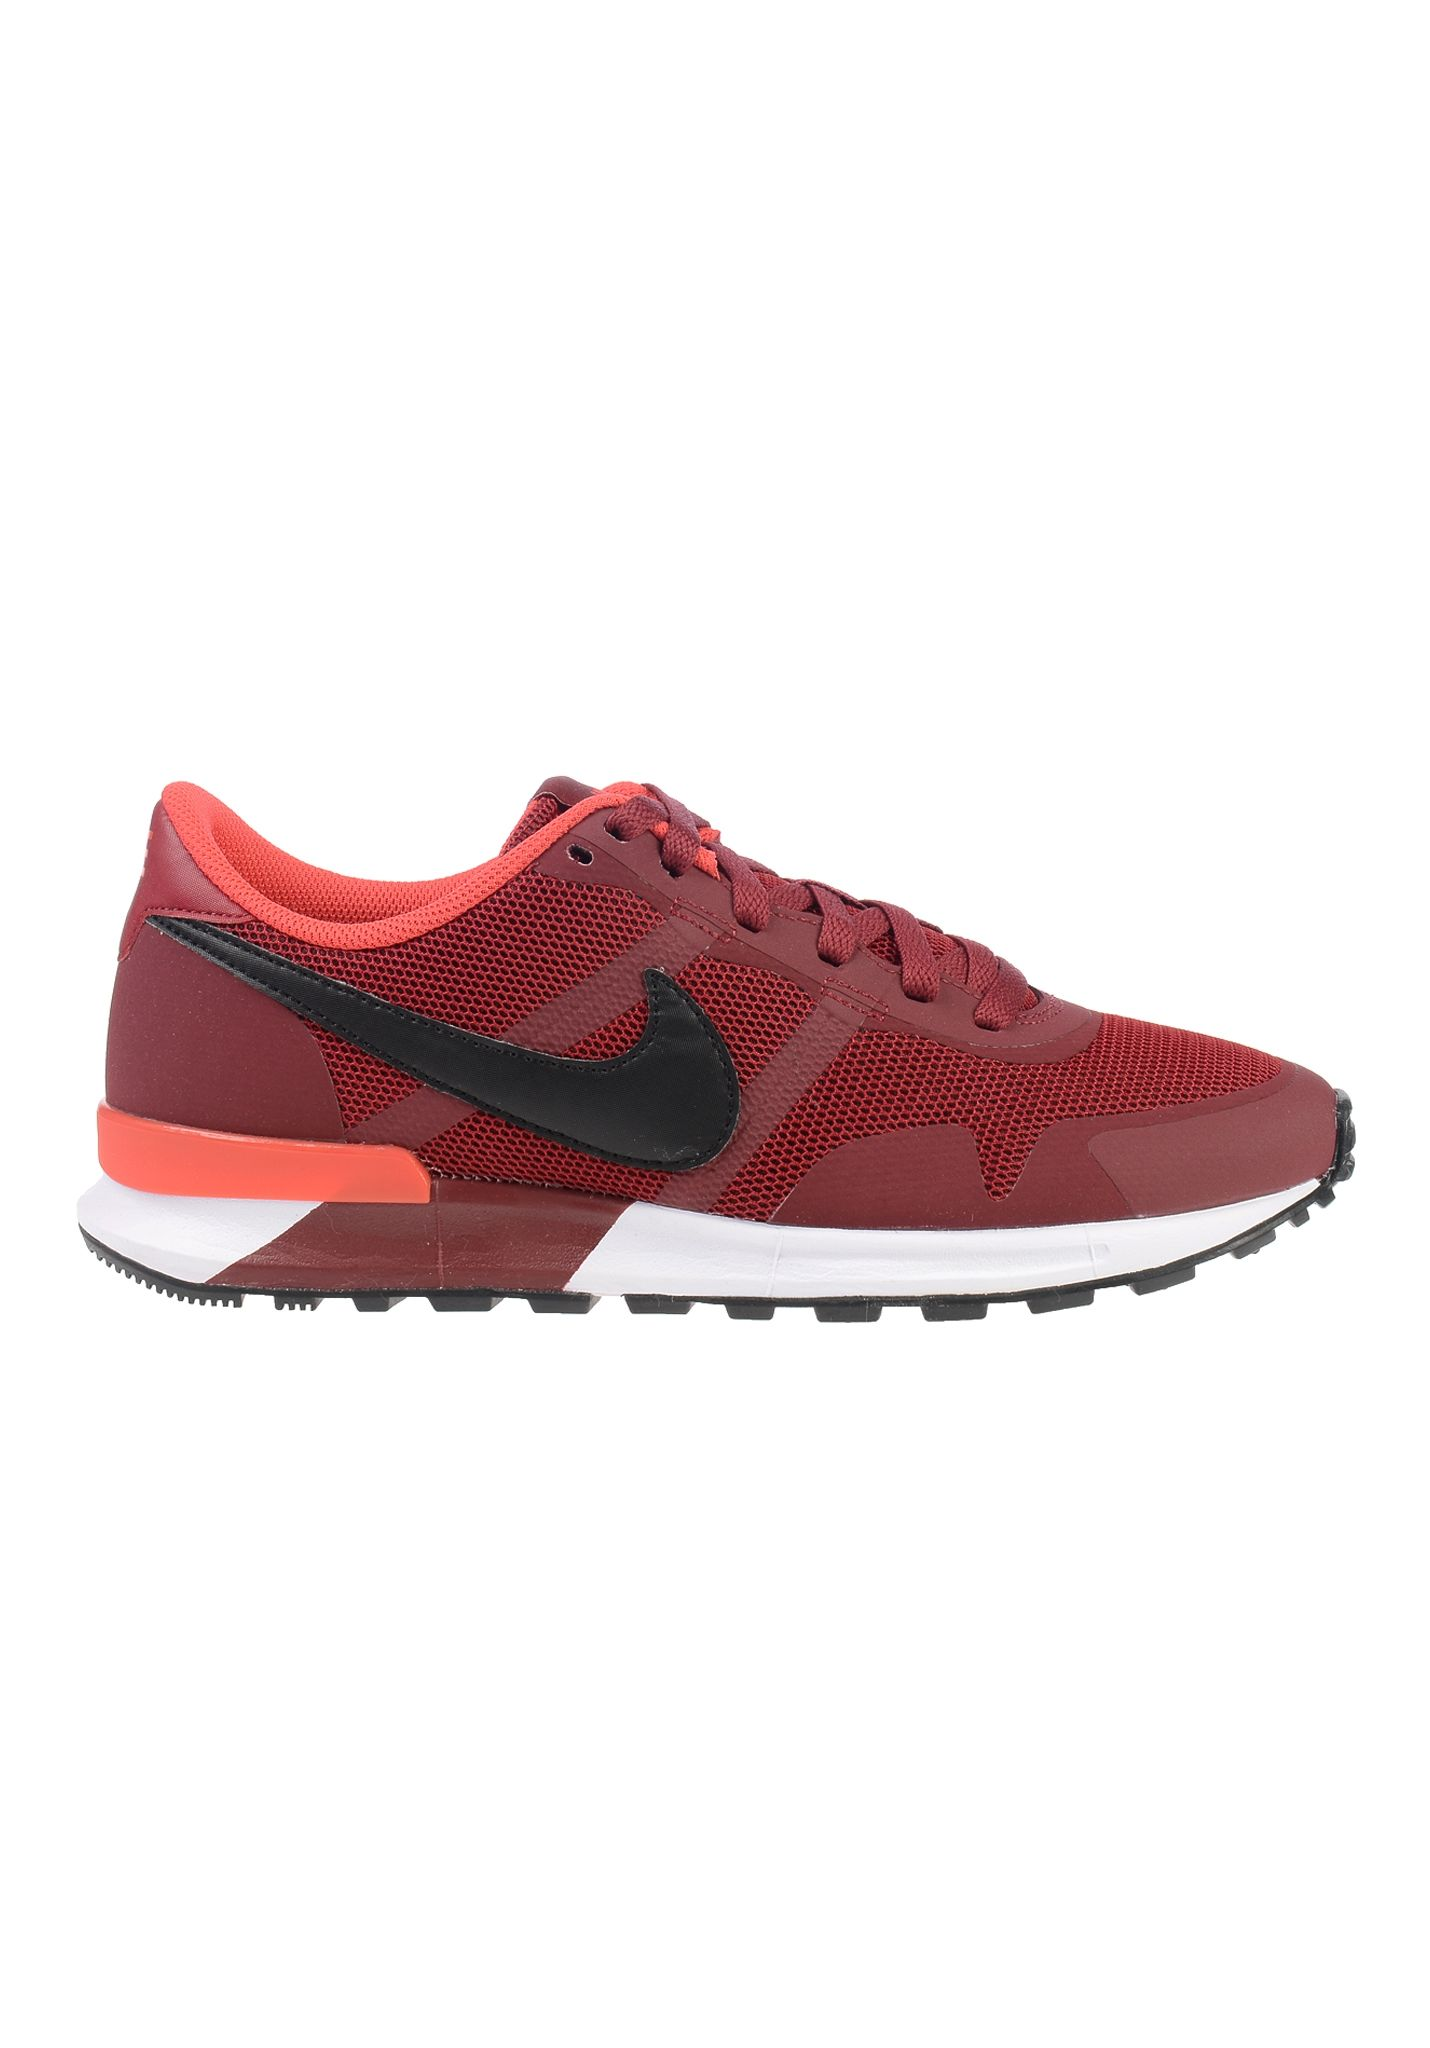 the latest c6e65 41788 NIKE SPORTSWEAR Air Pegasus 8330 - Sneakers for Men - Red - Planet Sports